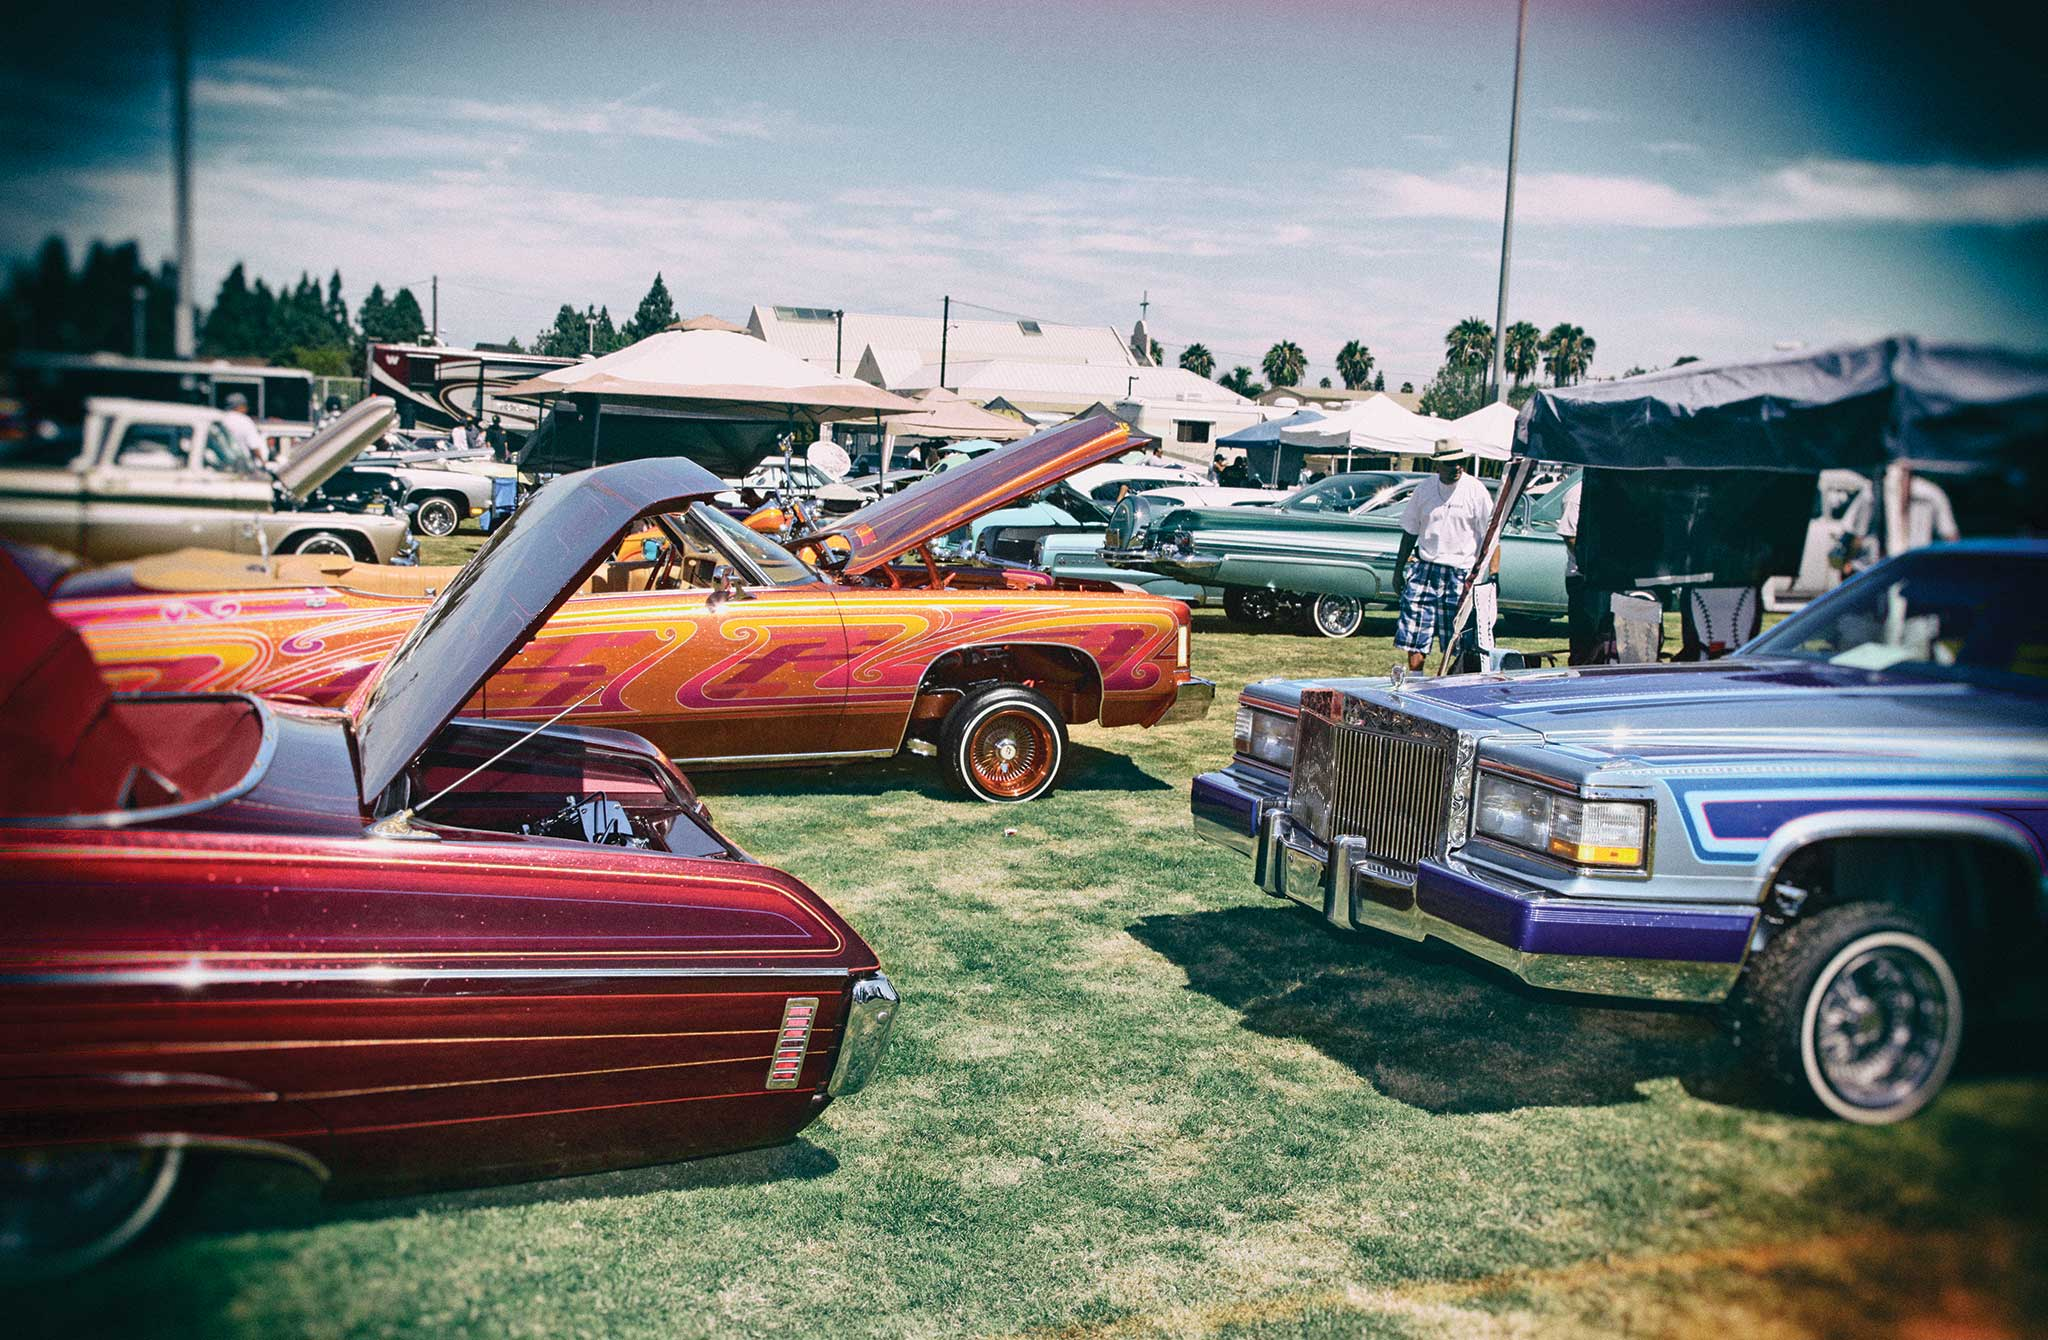 13th annual imperials car show concert lowrider. Black Bedroom Furniture Sets. Home Design Ideas